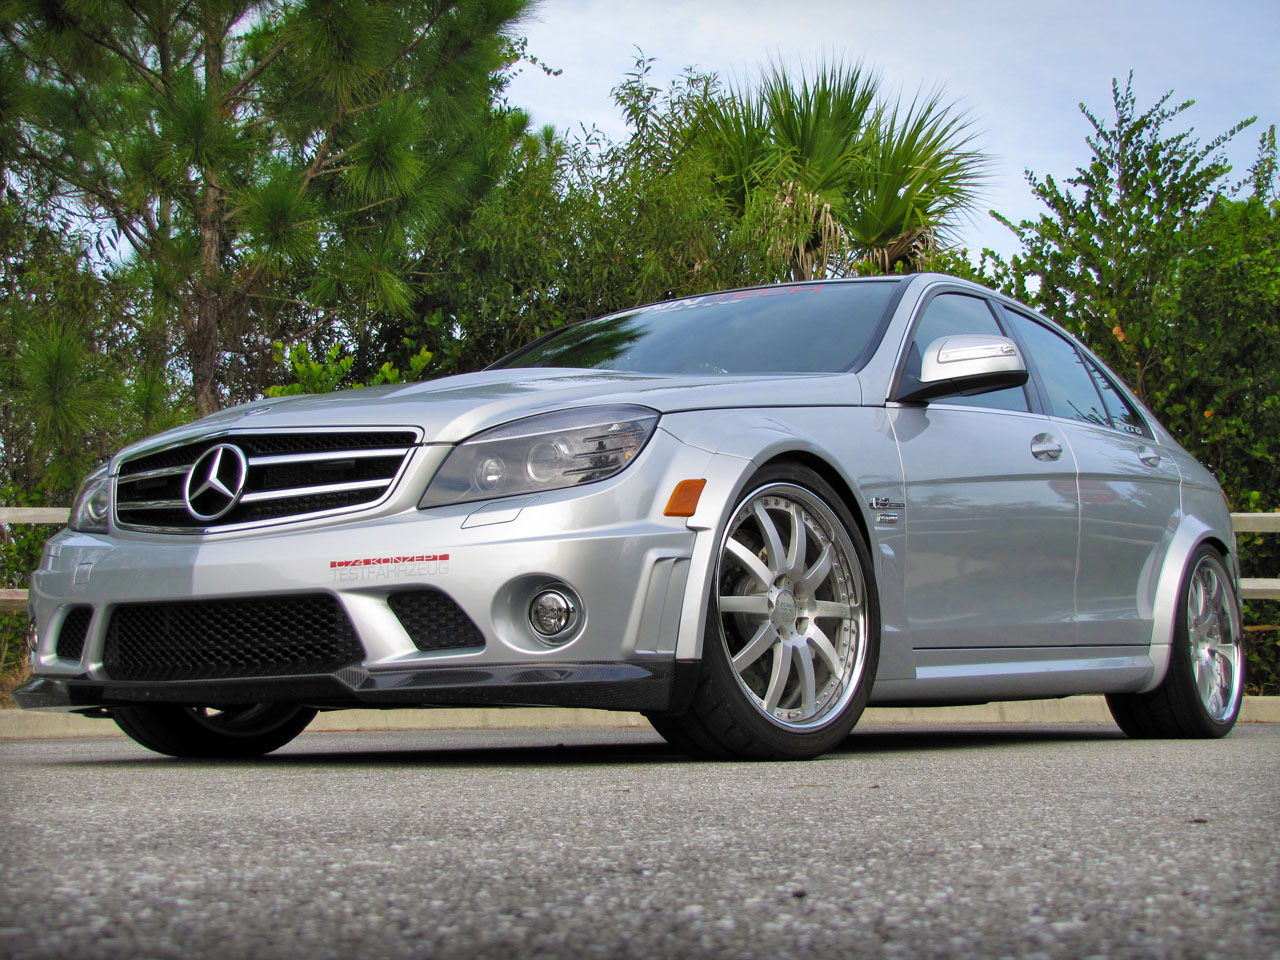 2008 mercedes benz c63 amg dyno sheet details. Black Bedroom Furniture Sets. Home Design Ideas